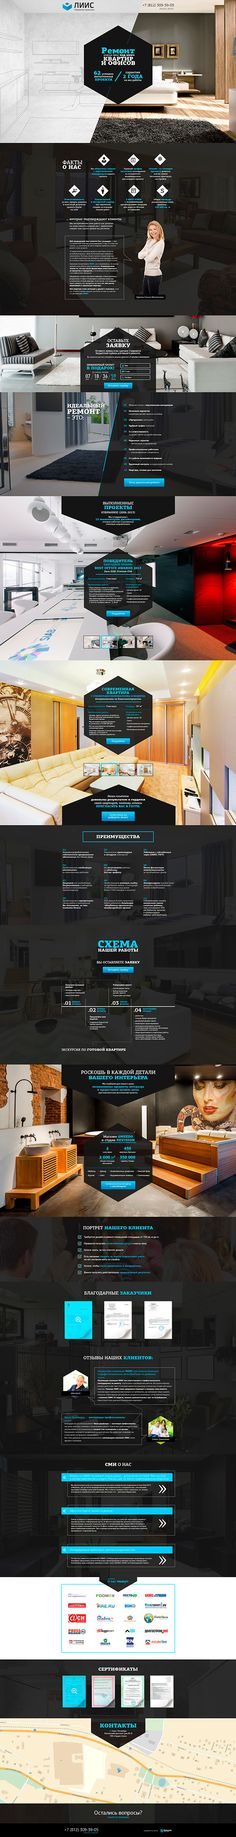 Smart House on Behance